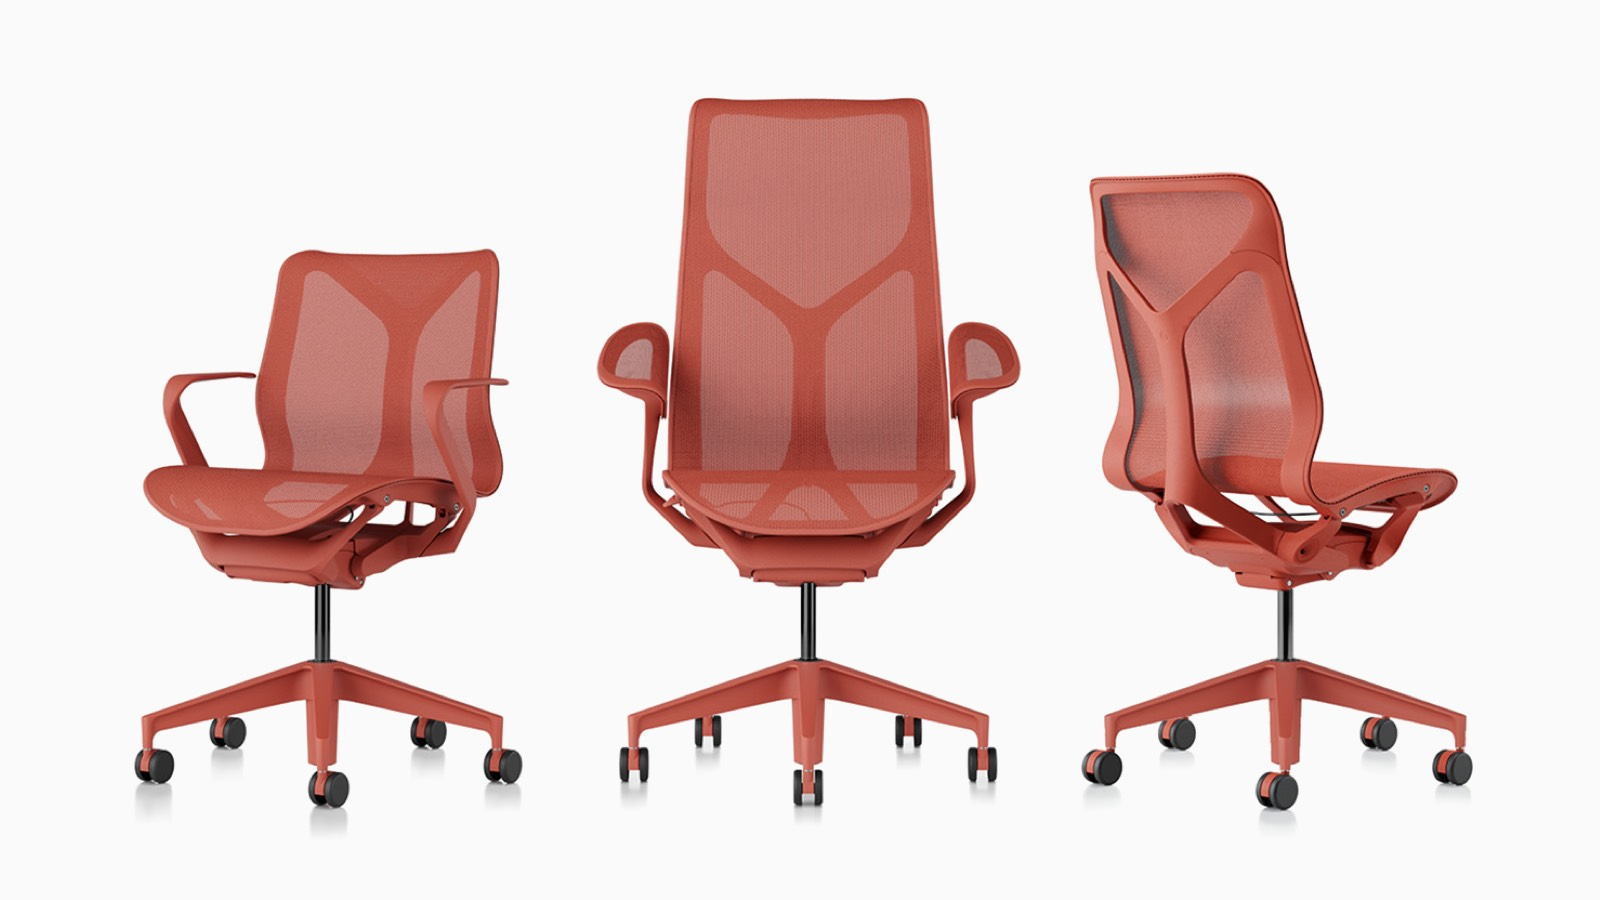 Low-back, high-back, and mid back Cosm ergonomic desk chairs with suspension materials, bases, and frames in Canyon red.